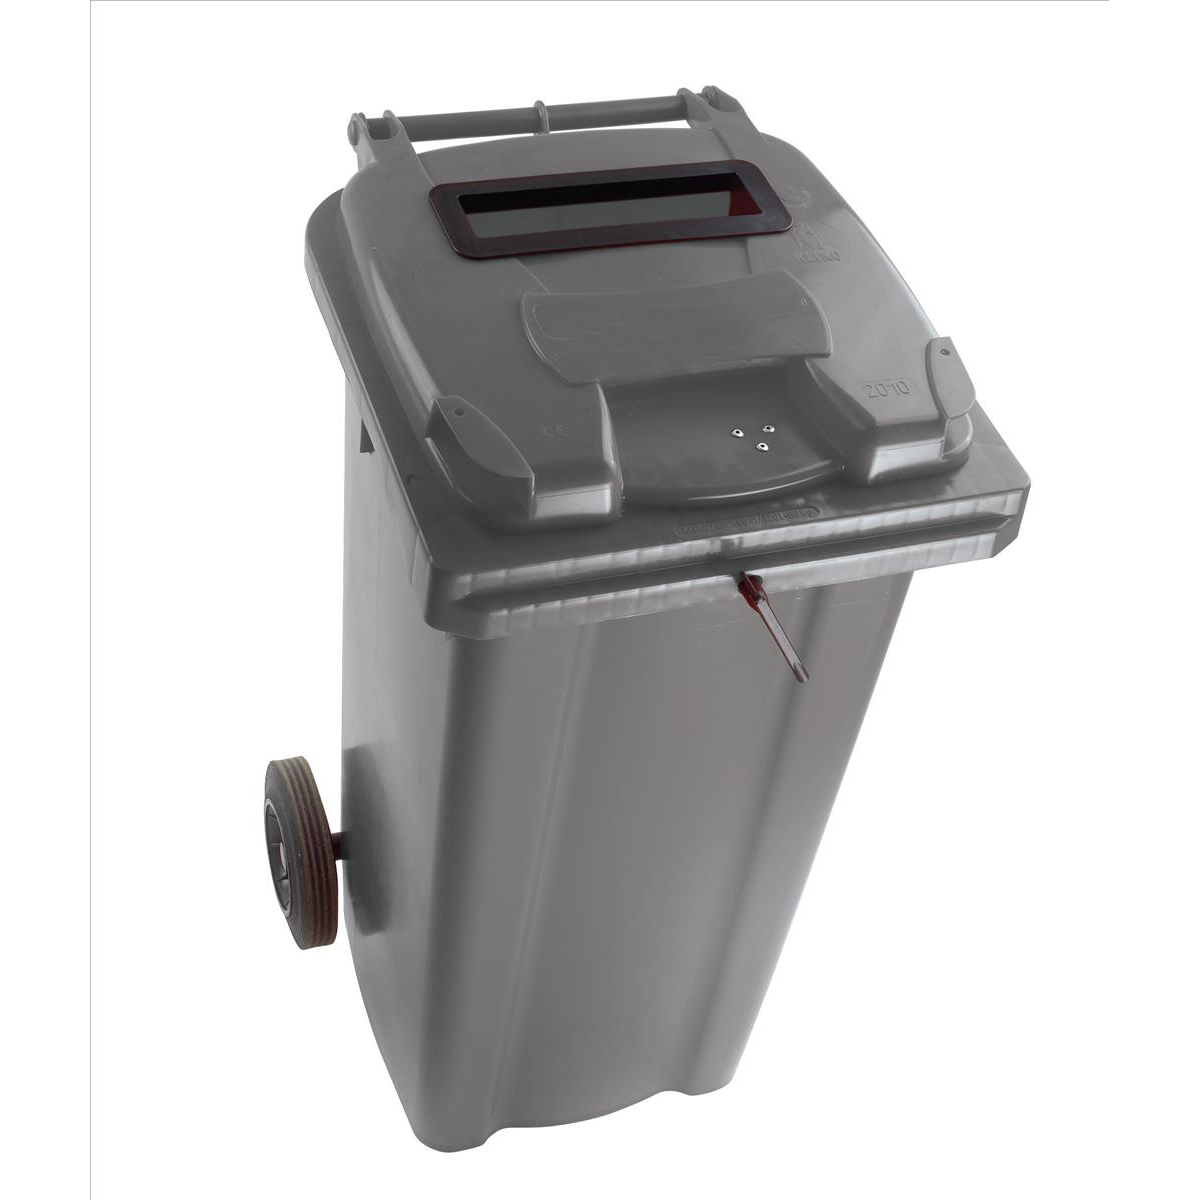 Wheeled Bin UV Stabilised Polyethylene with Rear Wheels Lid Lock 240 Litre Capacity 580x740x1070mm Grey